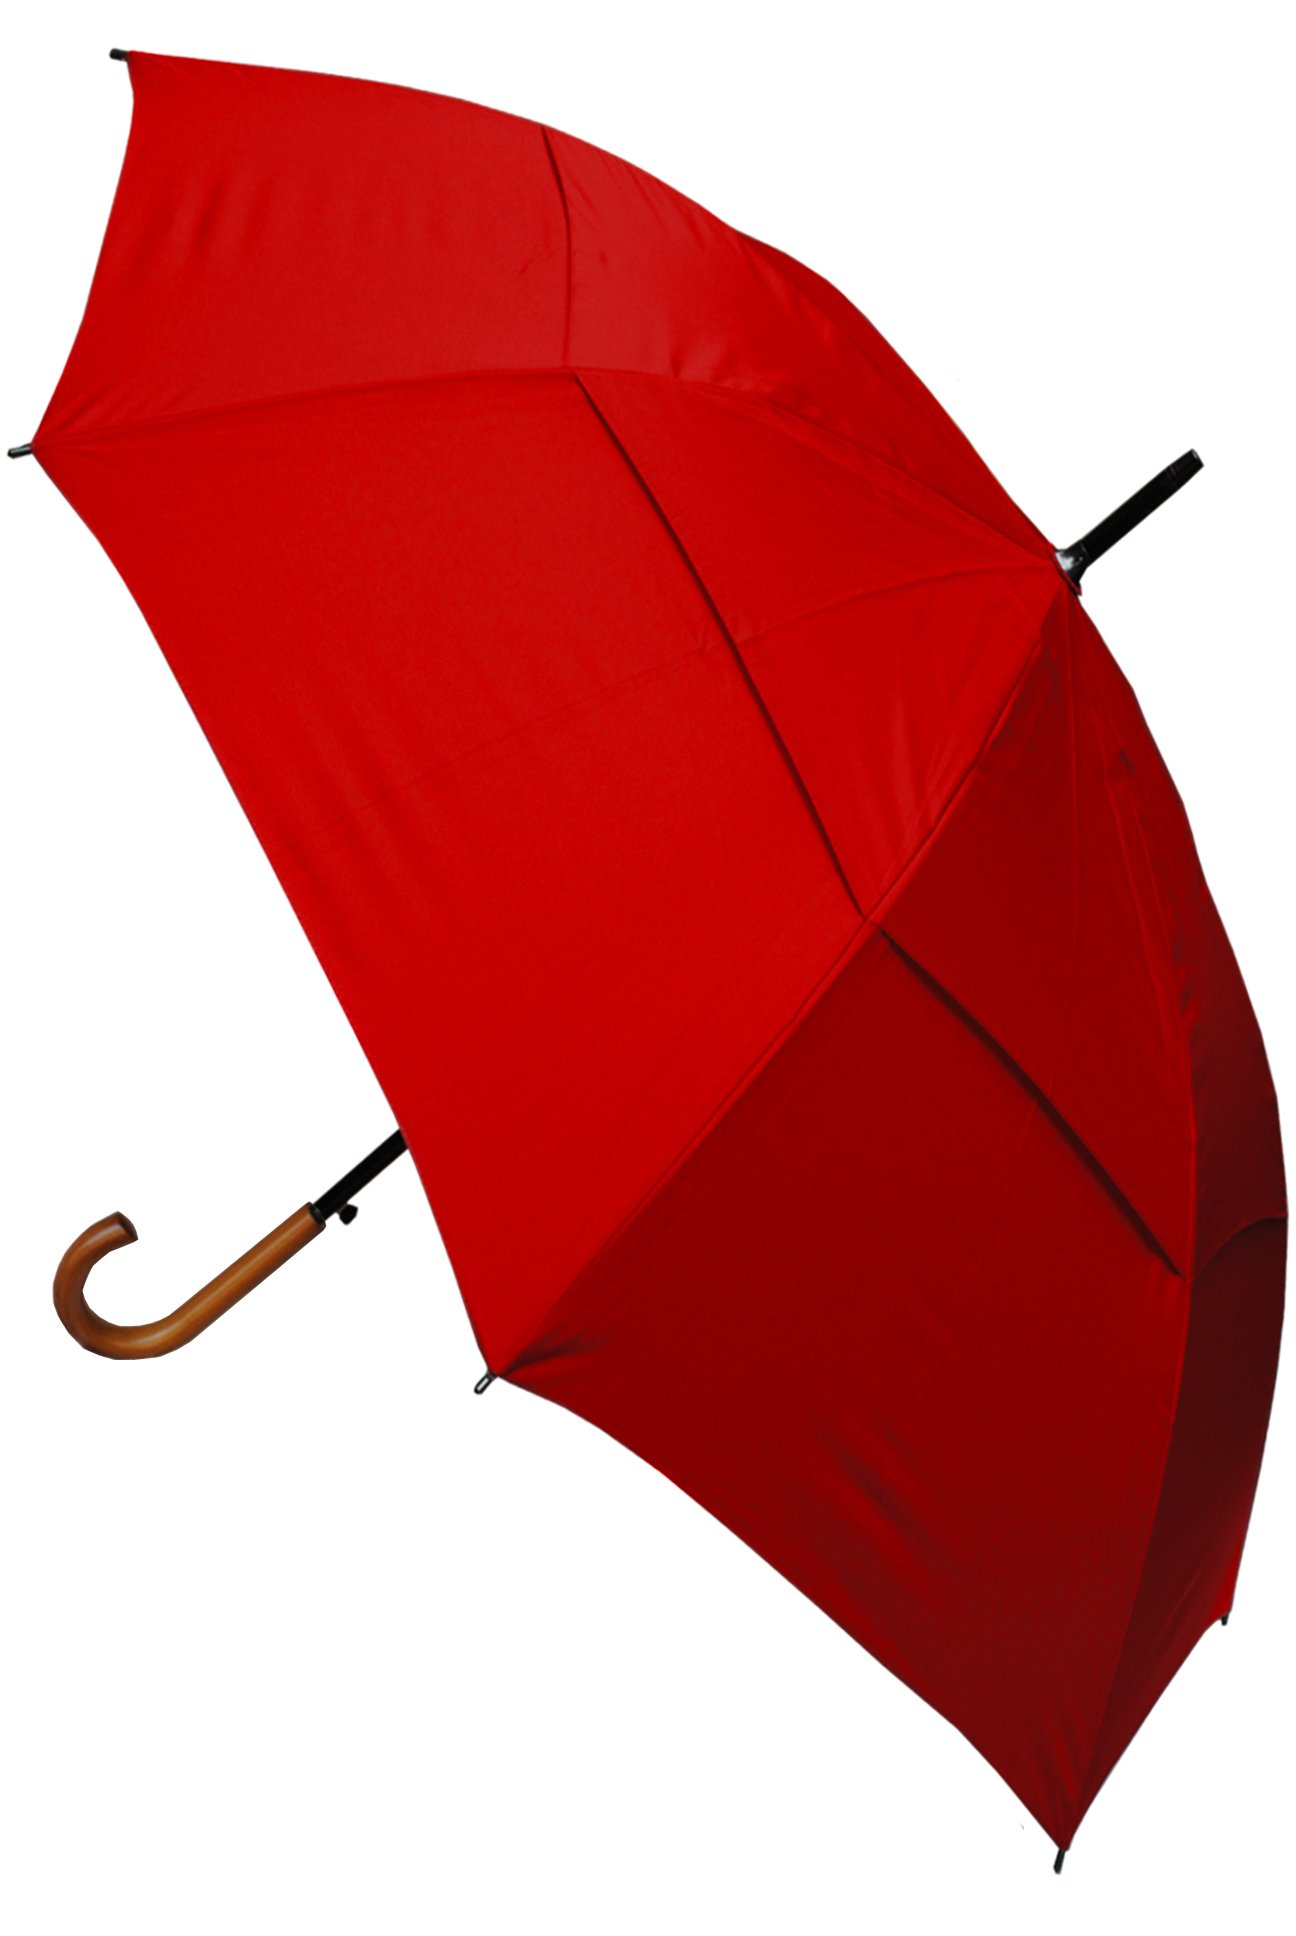 COLLAR AND CUFFS LONDON - Windproof EXTRA STRONG - StormDefender City Umbrella - Vented Canopy - HIGHLY ENGINEERED TO COMBAT INVERSION DAMAGE - Auto Open - Solid Wood Hook Handle - Red Wedding